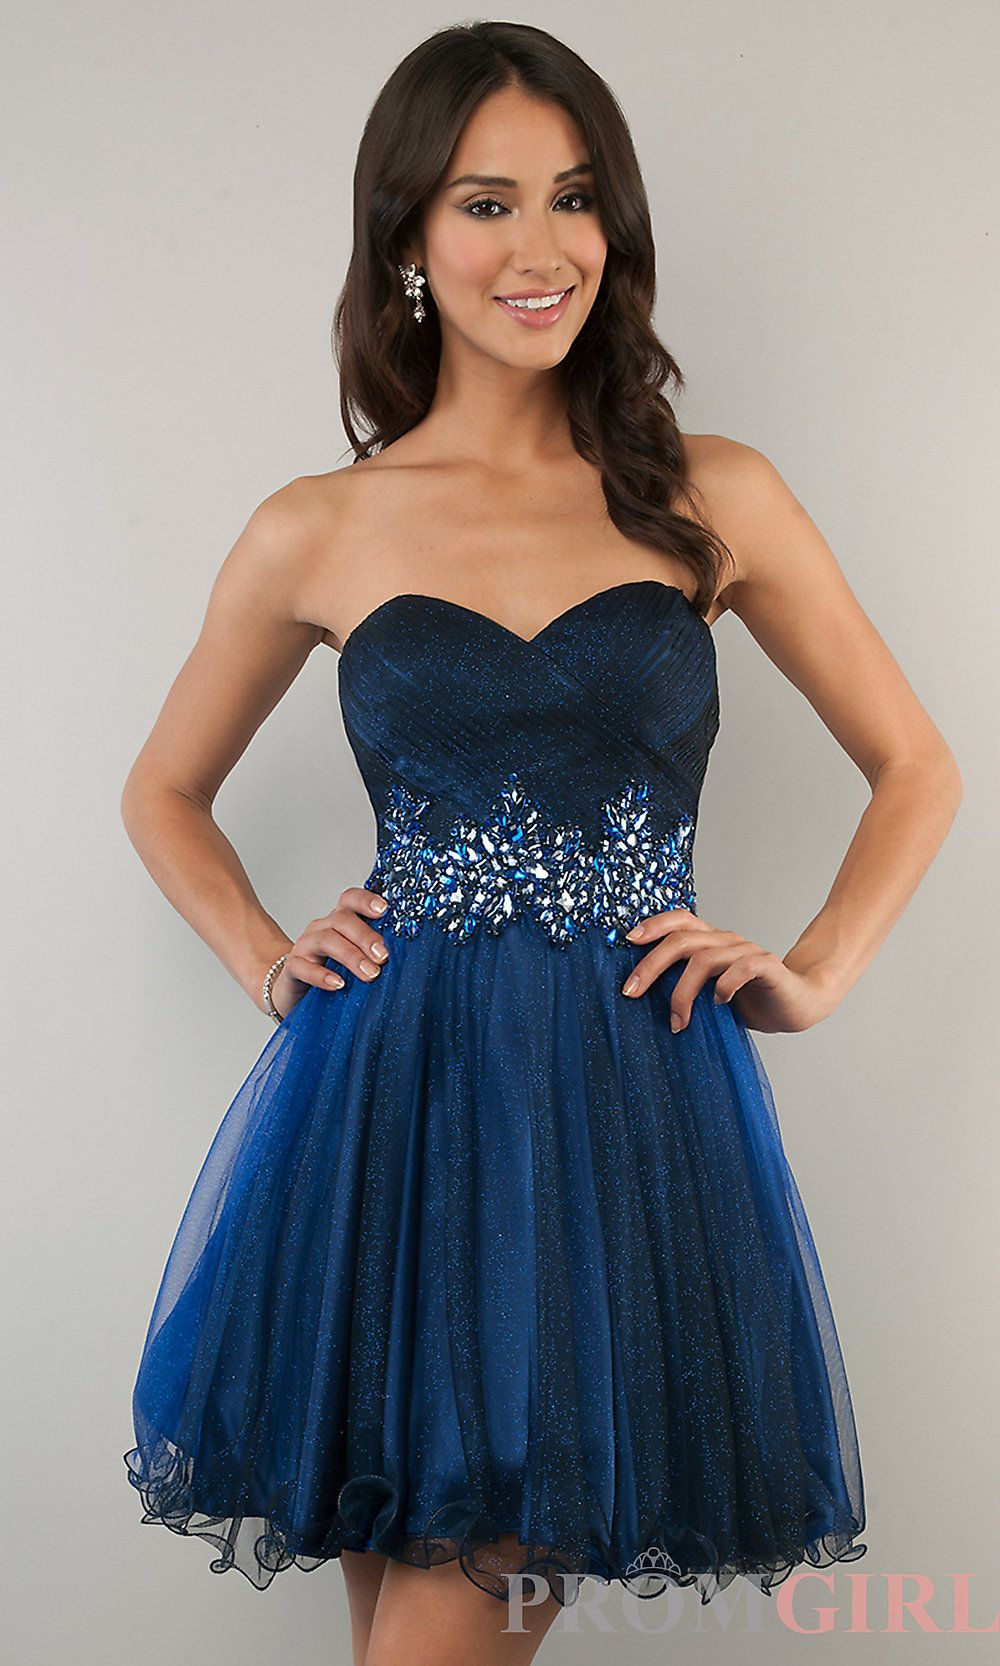 Strapless Short Prom Dresses, B Darlin Blue Prom Dress- PromGirl ...